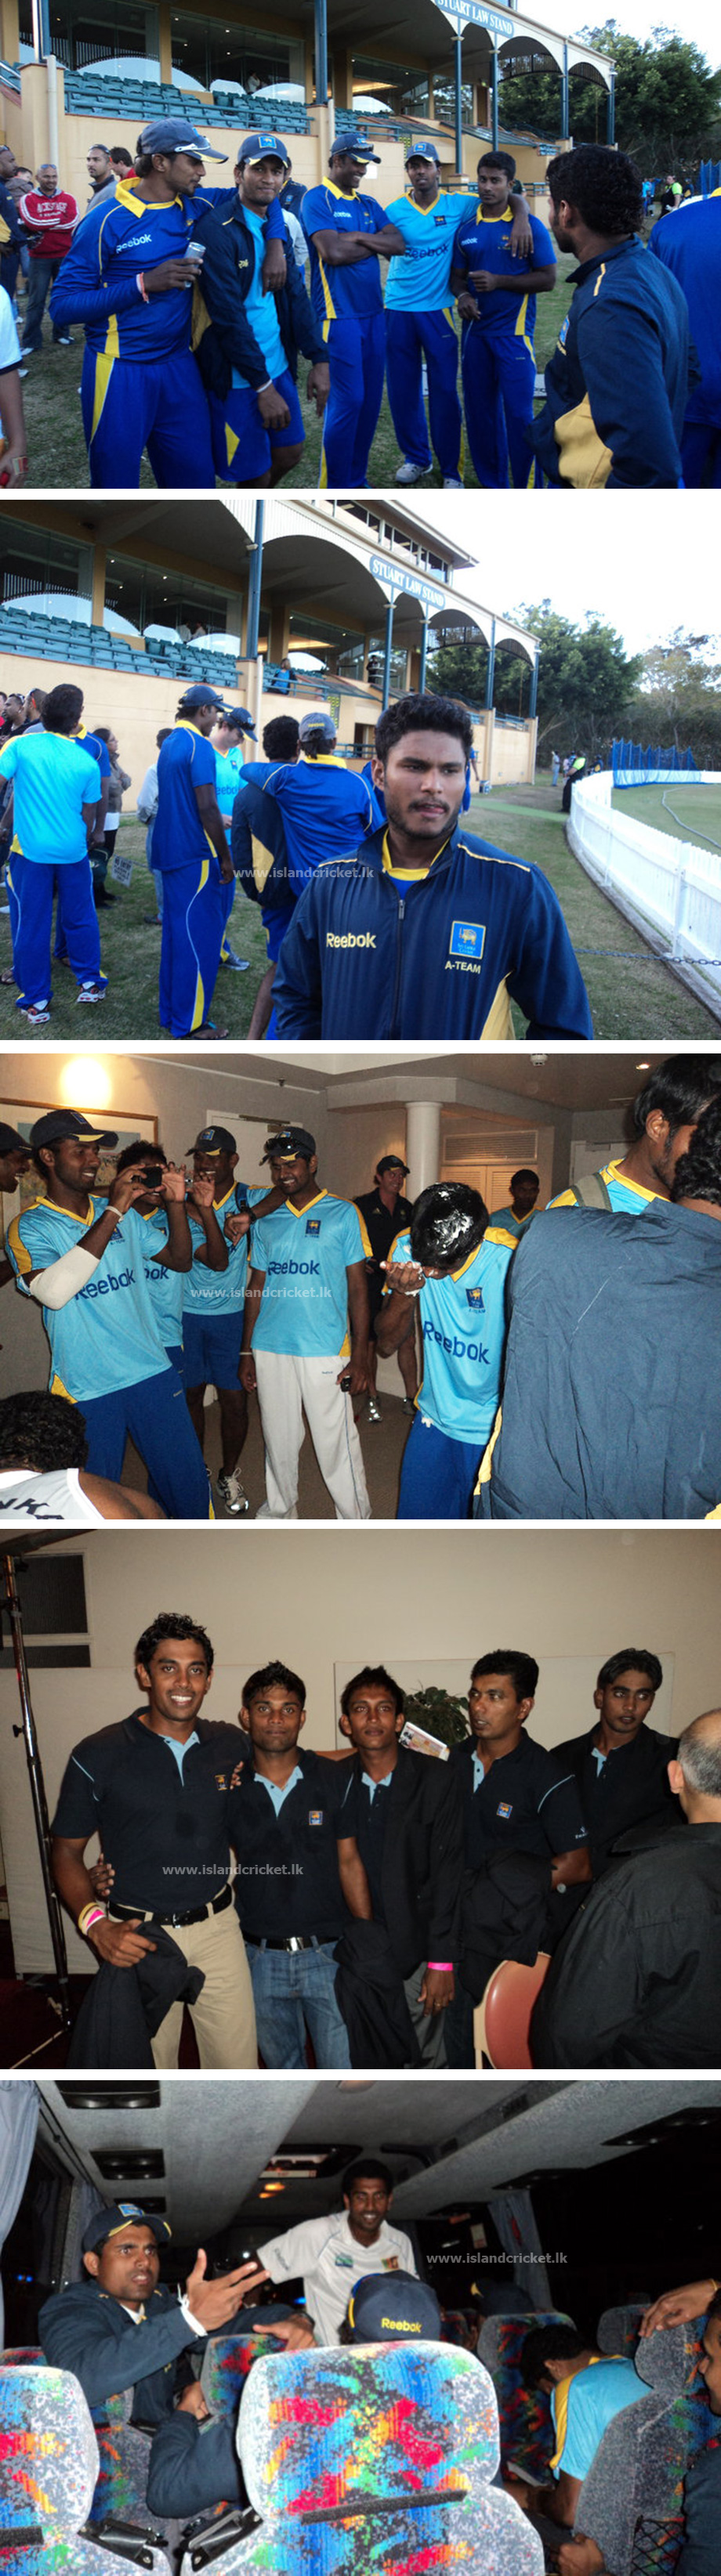 More photos from Sri Lanka's A team tour to Australia 2010